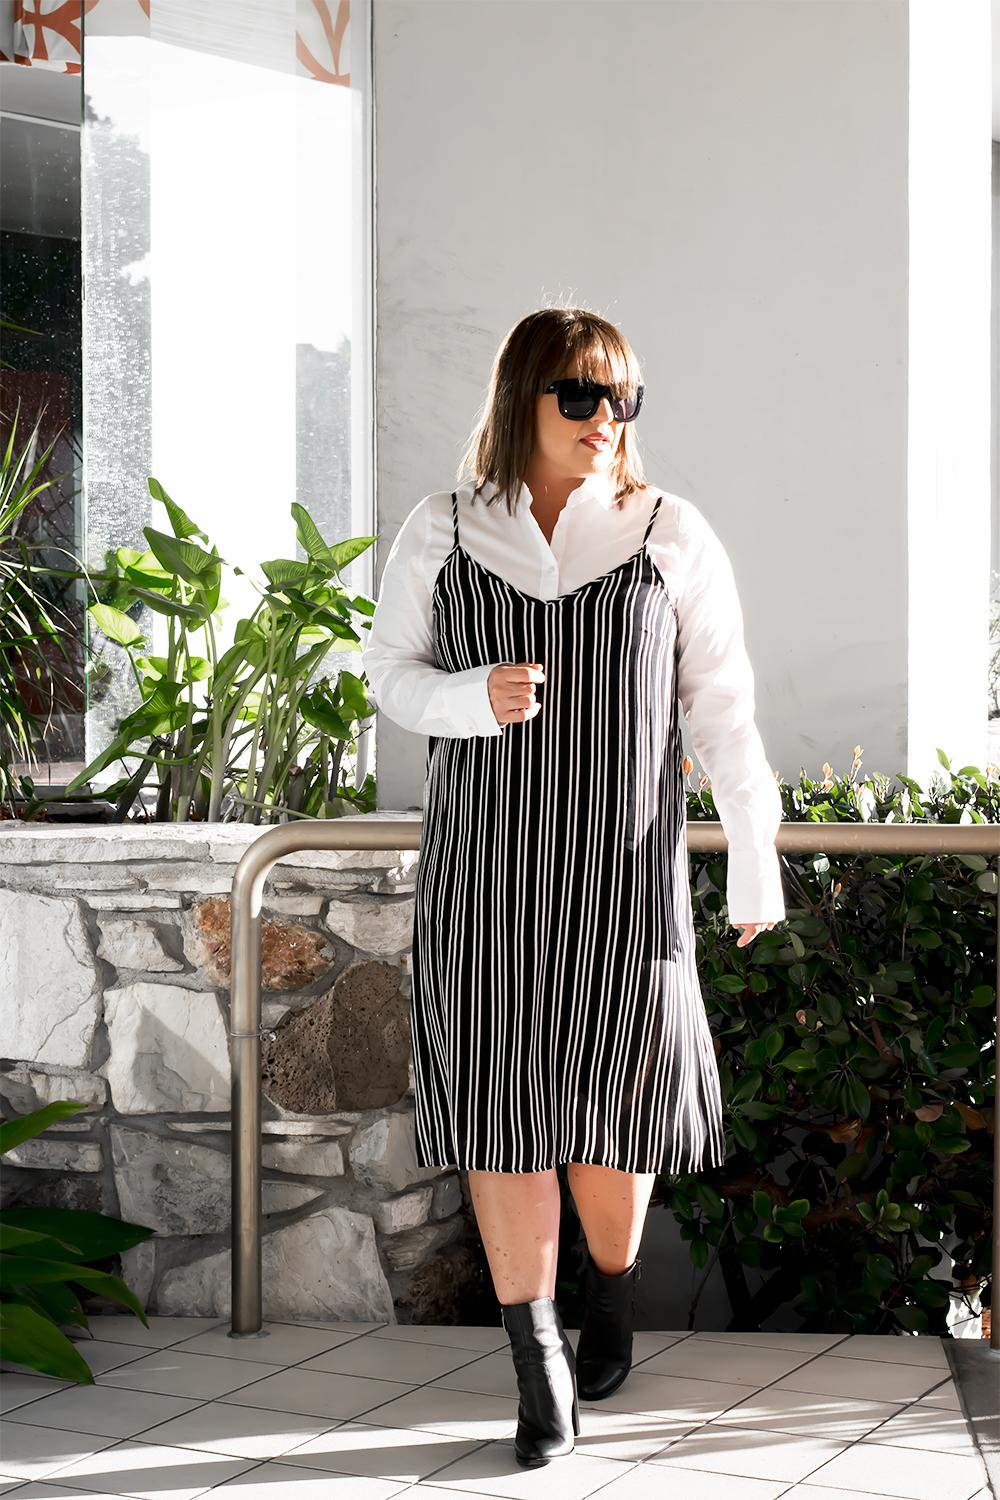 Vertical-Stripe-Trend-Street-Style-Looks-to-Copy-in-2017-Barefoot-in-LA-Fashion-Blog-Style-Ideas-Outfits-0699